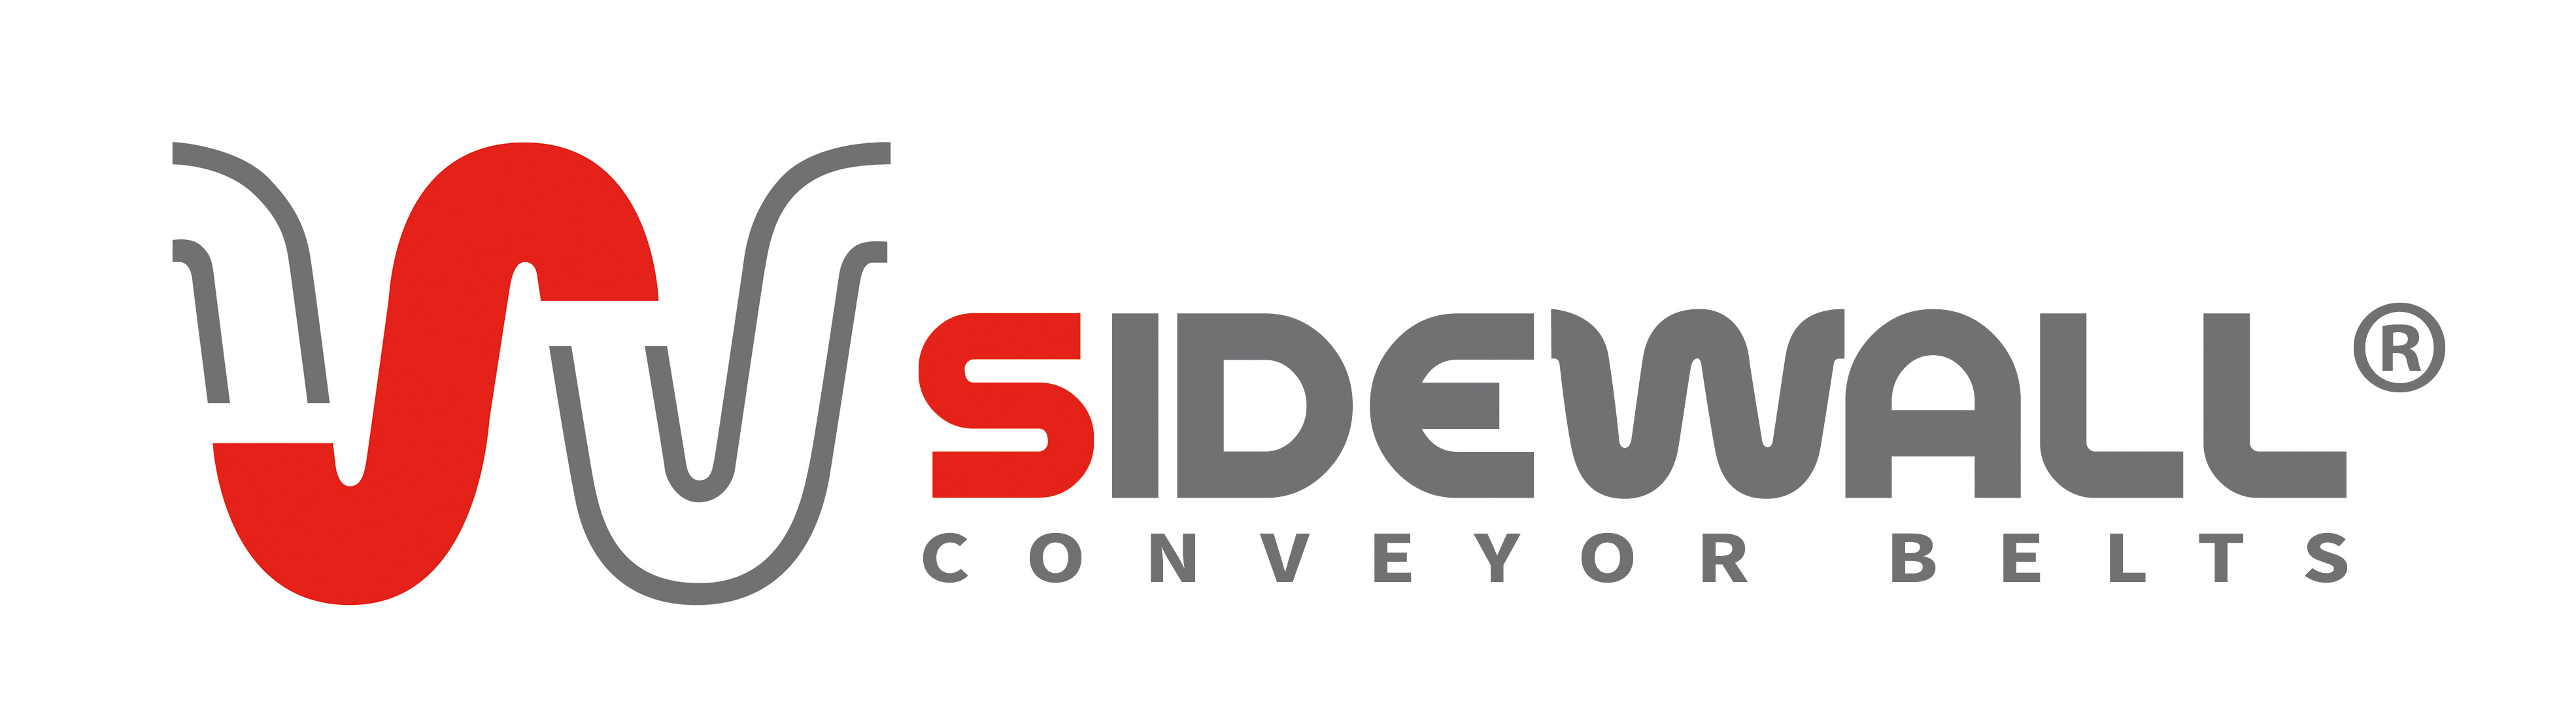 Sidewall - Conveyor Belts